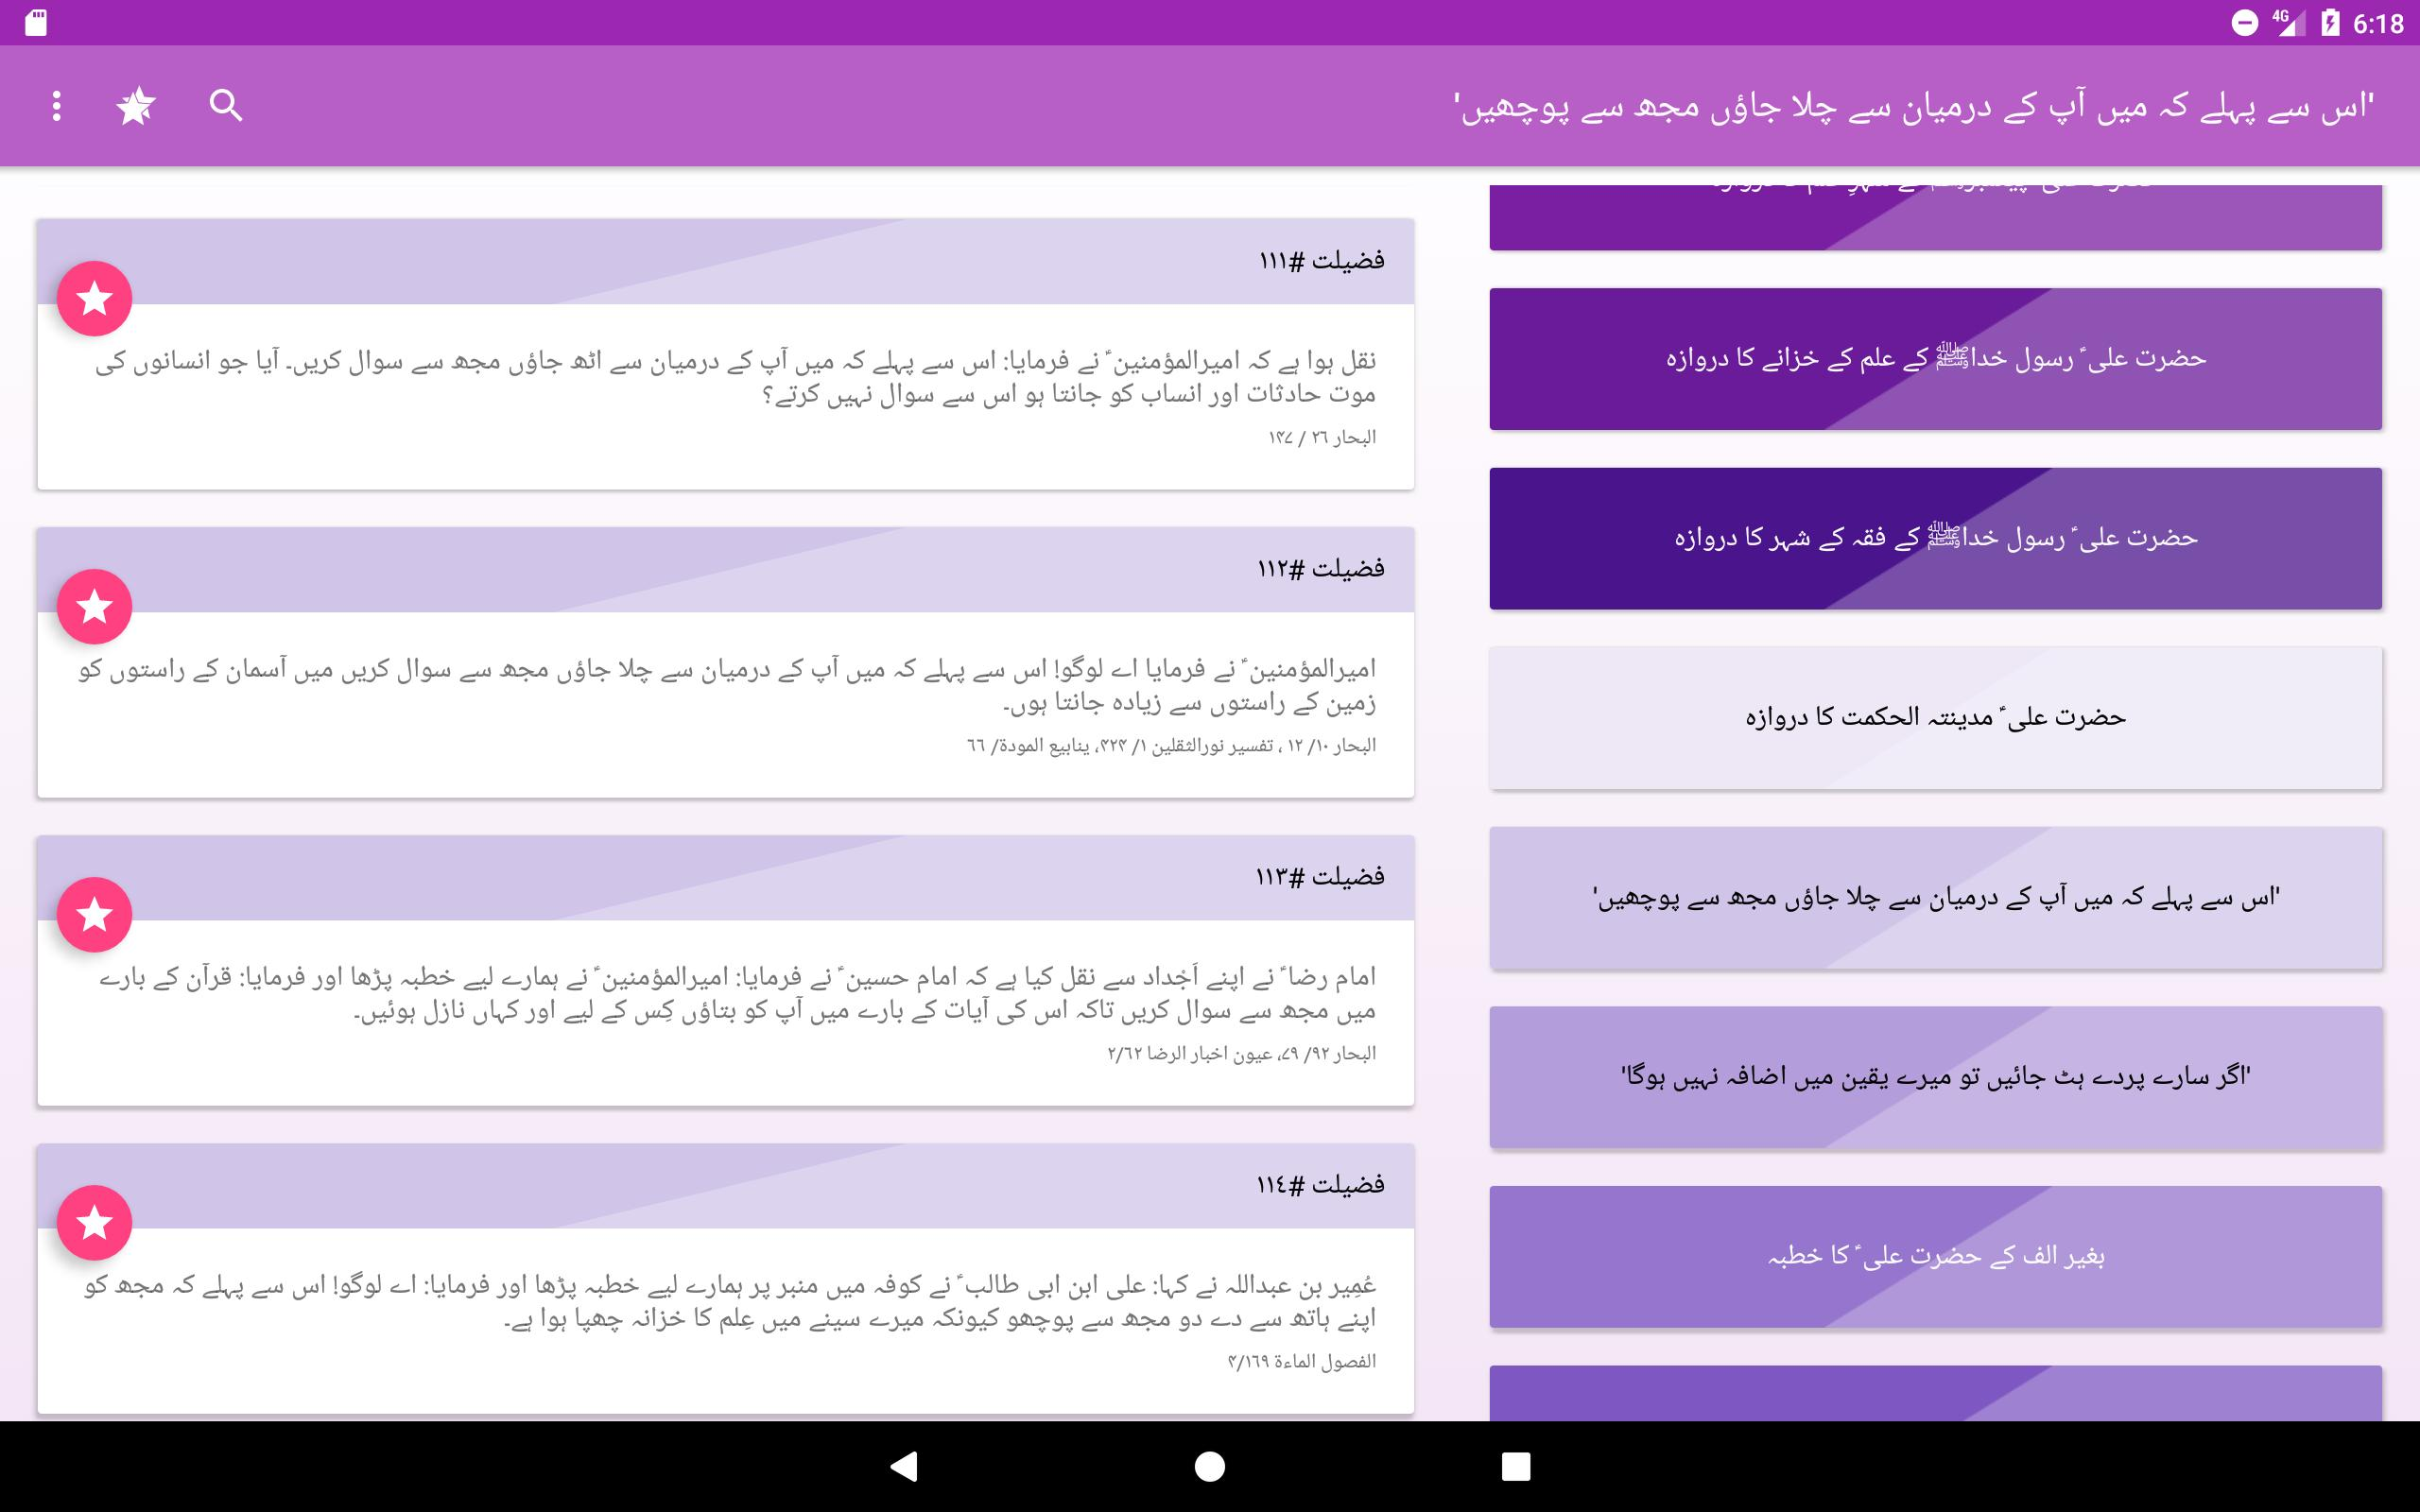 12 Virtues 1000 virtues (فضائل) of imam ali a.s (eng + ١ردو) for